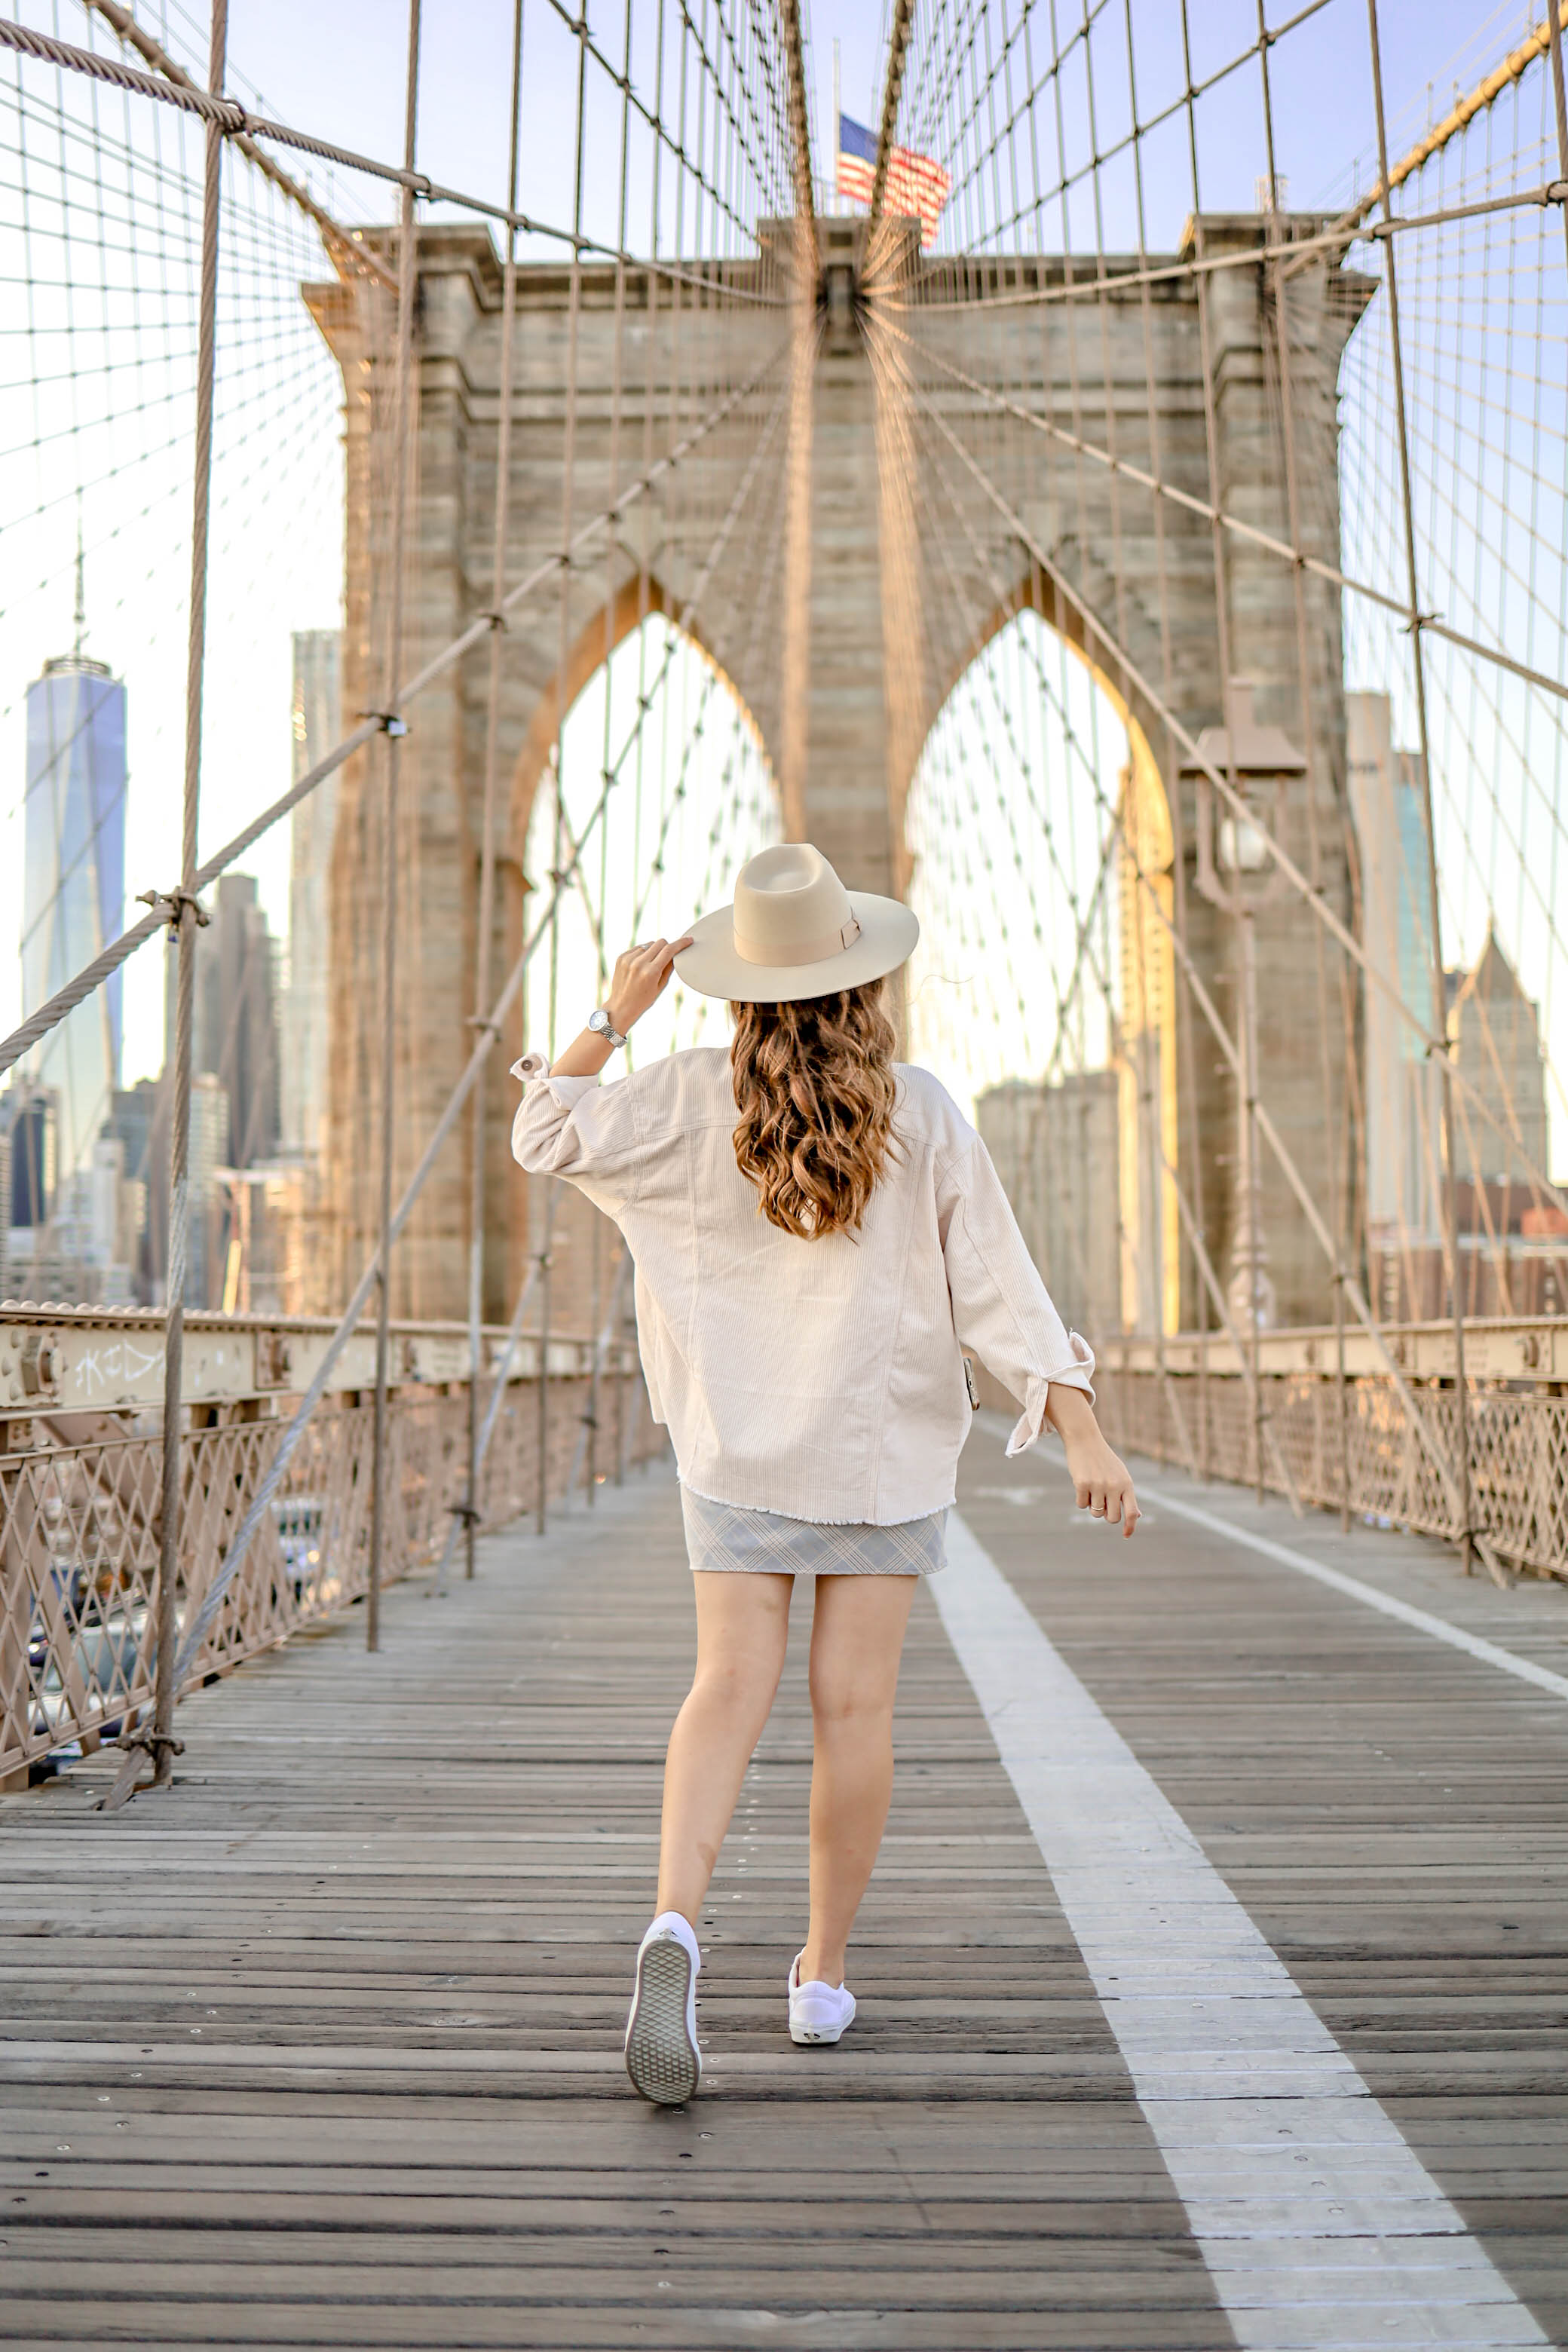 28 of The Best Things to Do in New York